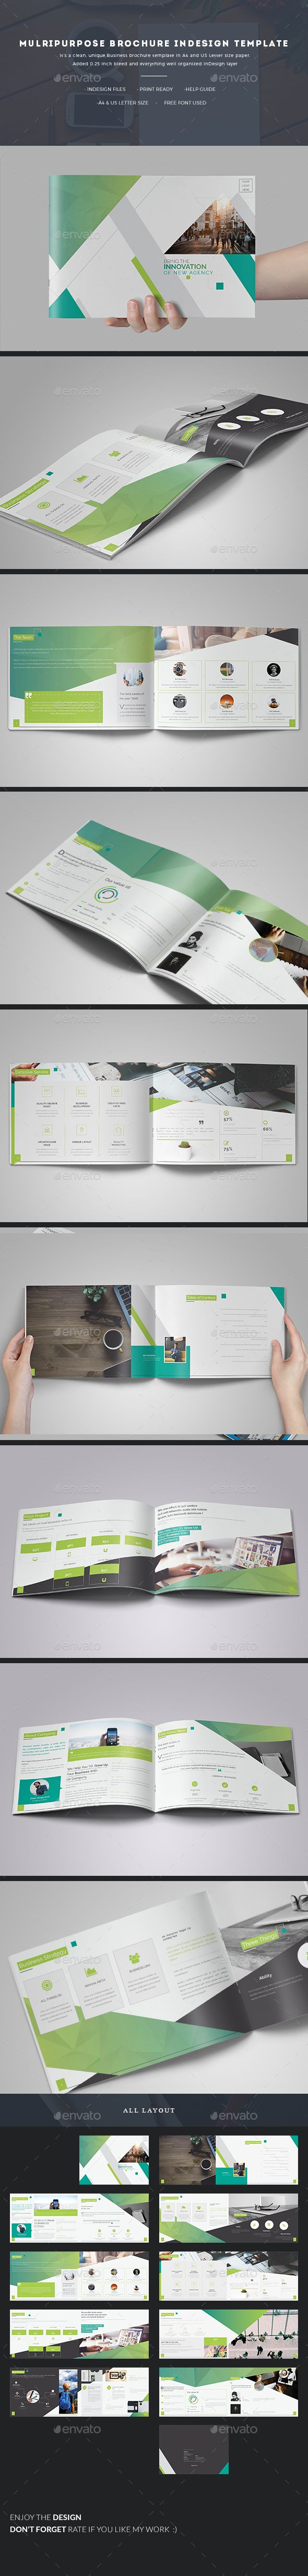 Multipurpose Brochure InDesign Template #inspiration #brochure #business • Download ➝ https://graphicriver.net/item/multipurpose-brochure-indesign-template/18619989?ref=pxcr